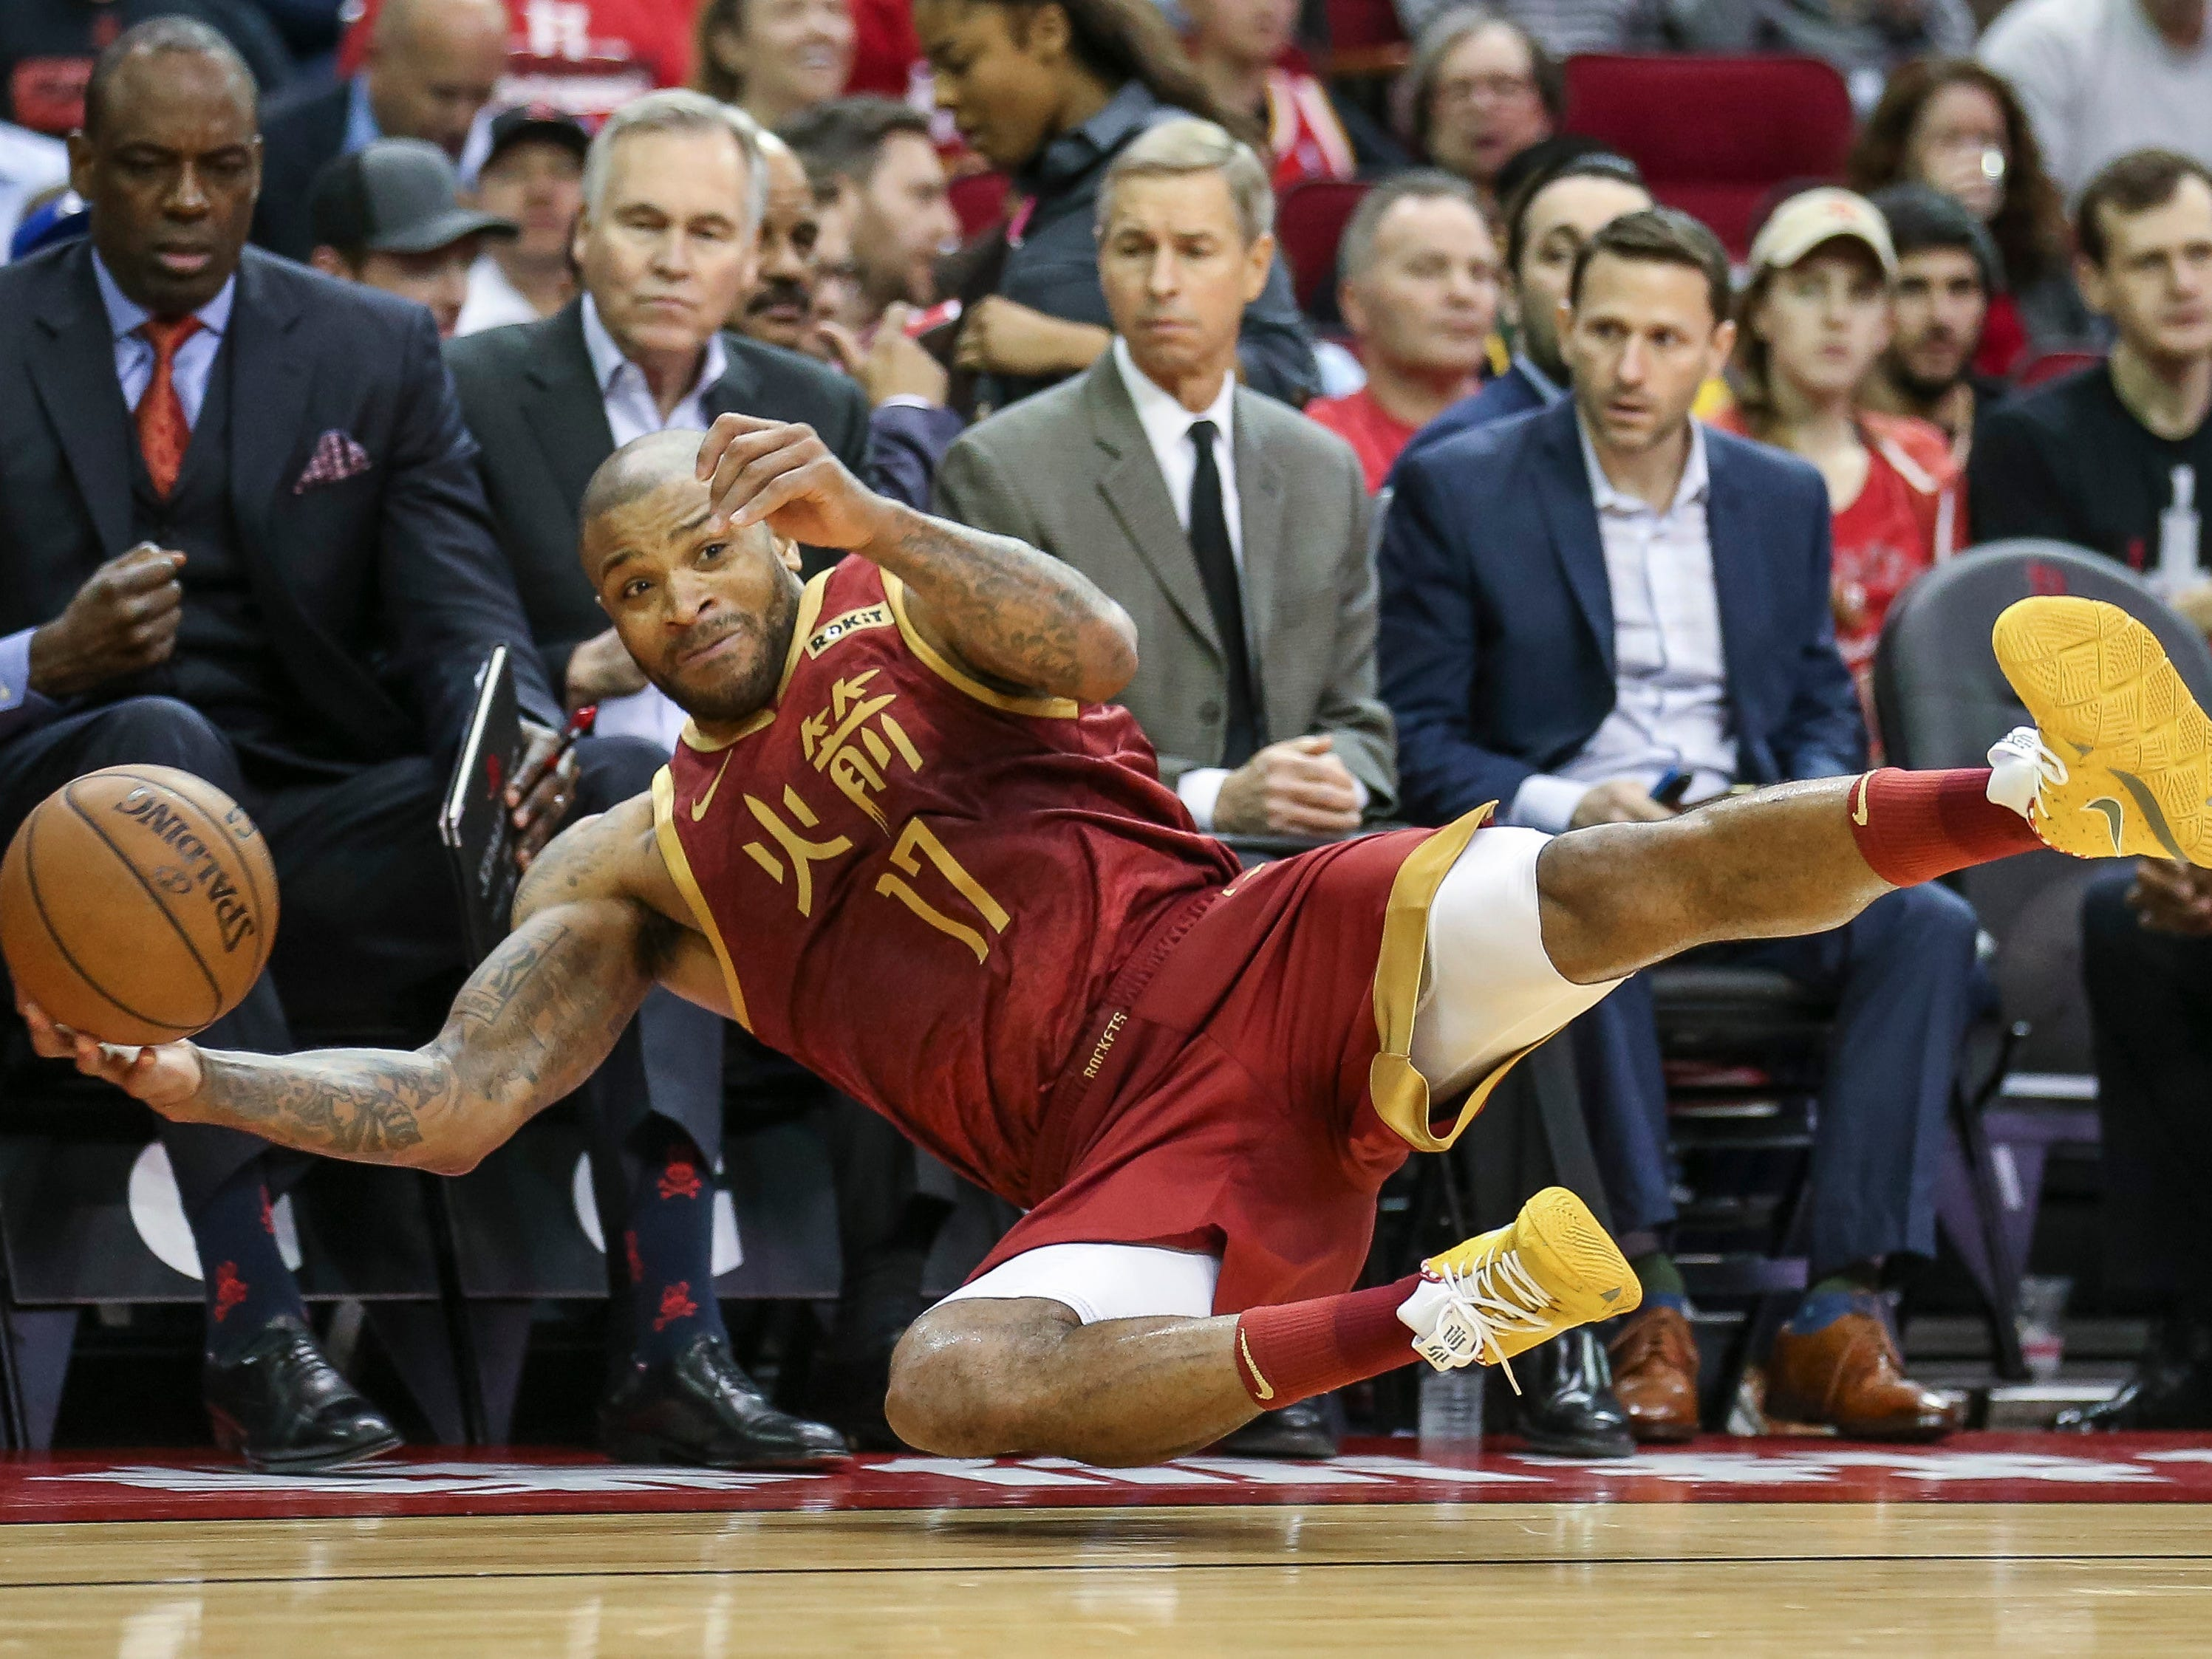 Feb. 11: Rockets forward P.J. Tucker hits the deck to save a loose ball from going out of bounds during the second half against the Mavericks in Houston.